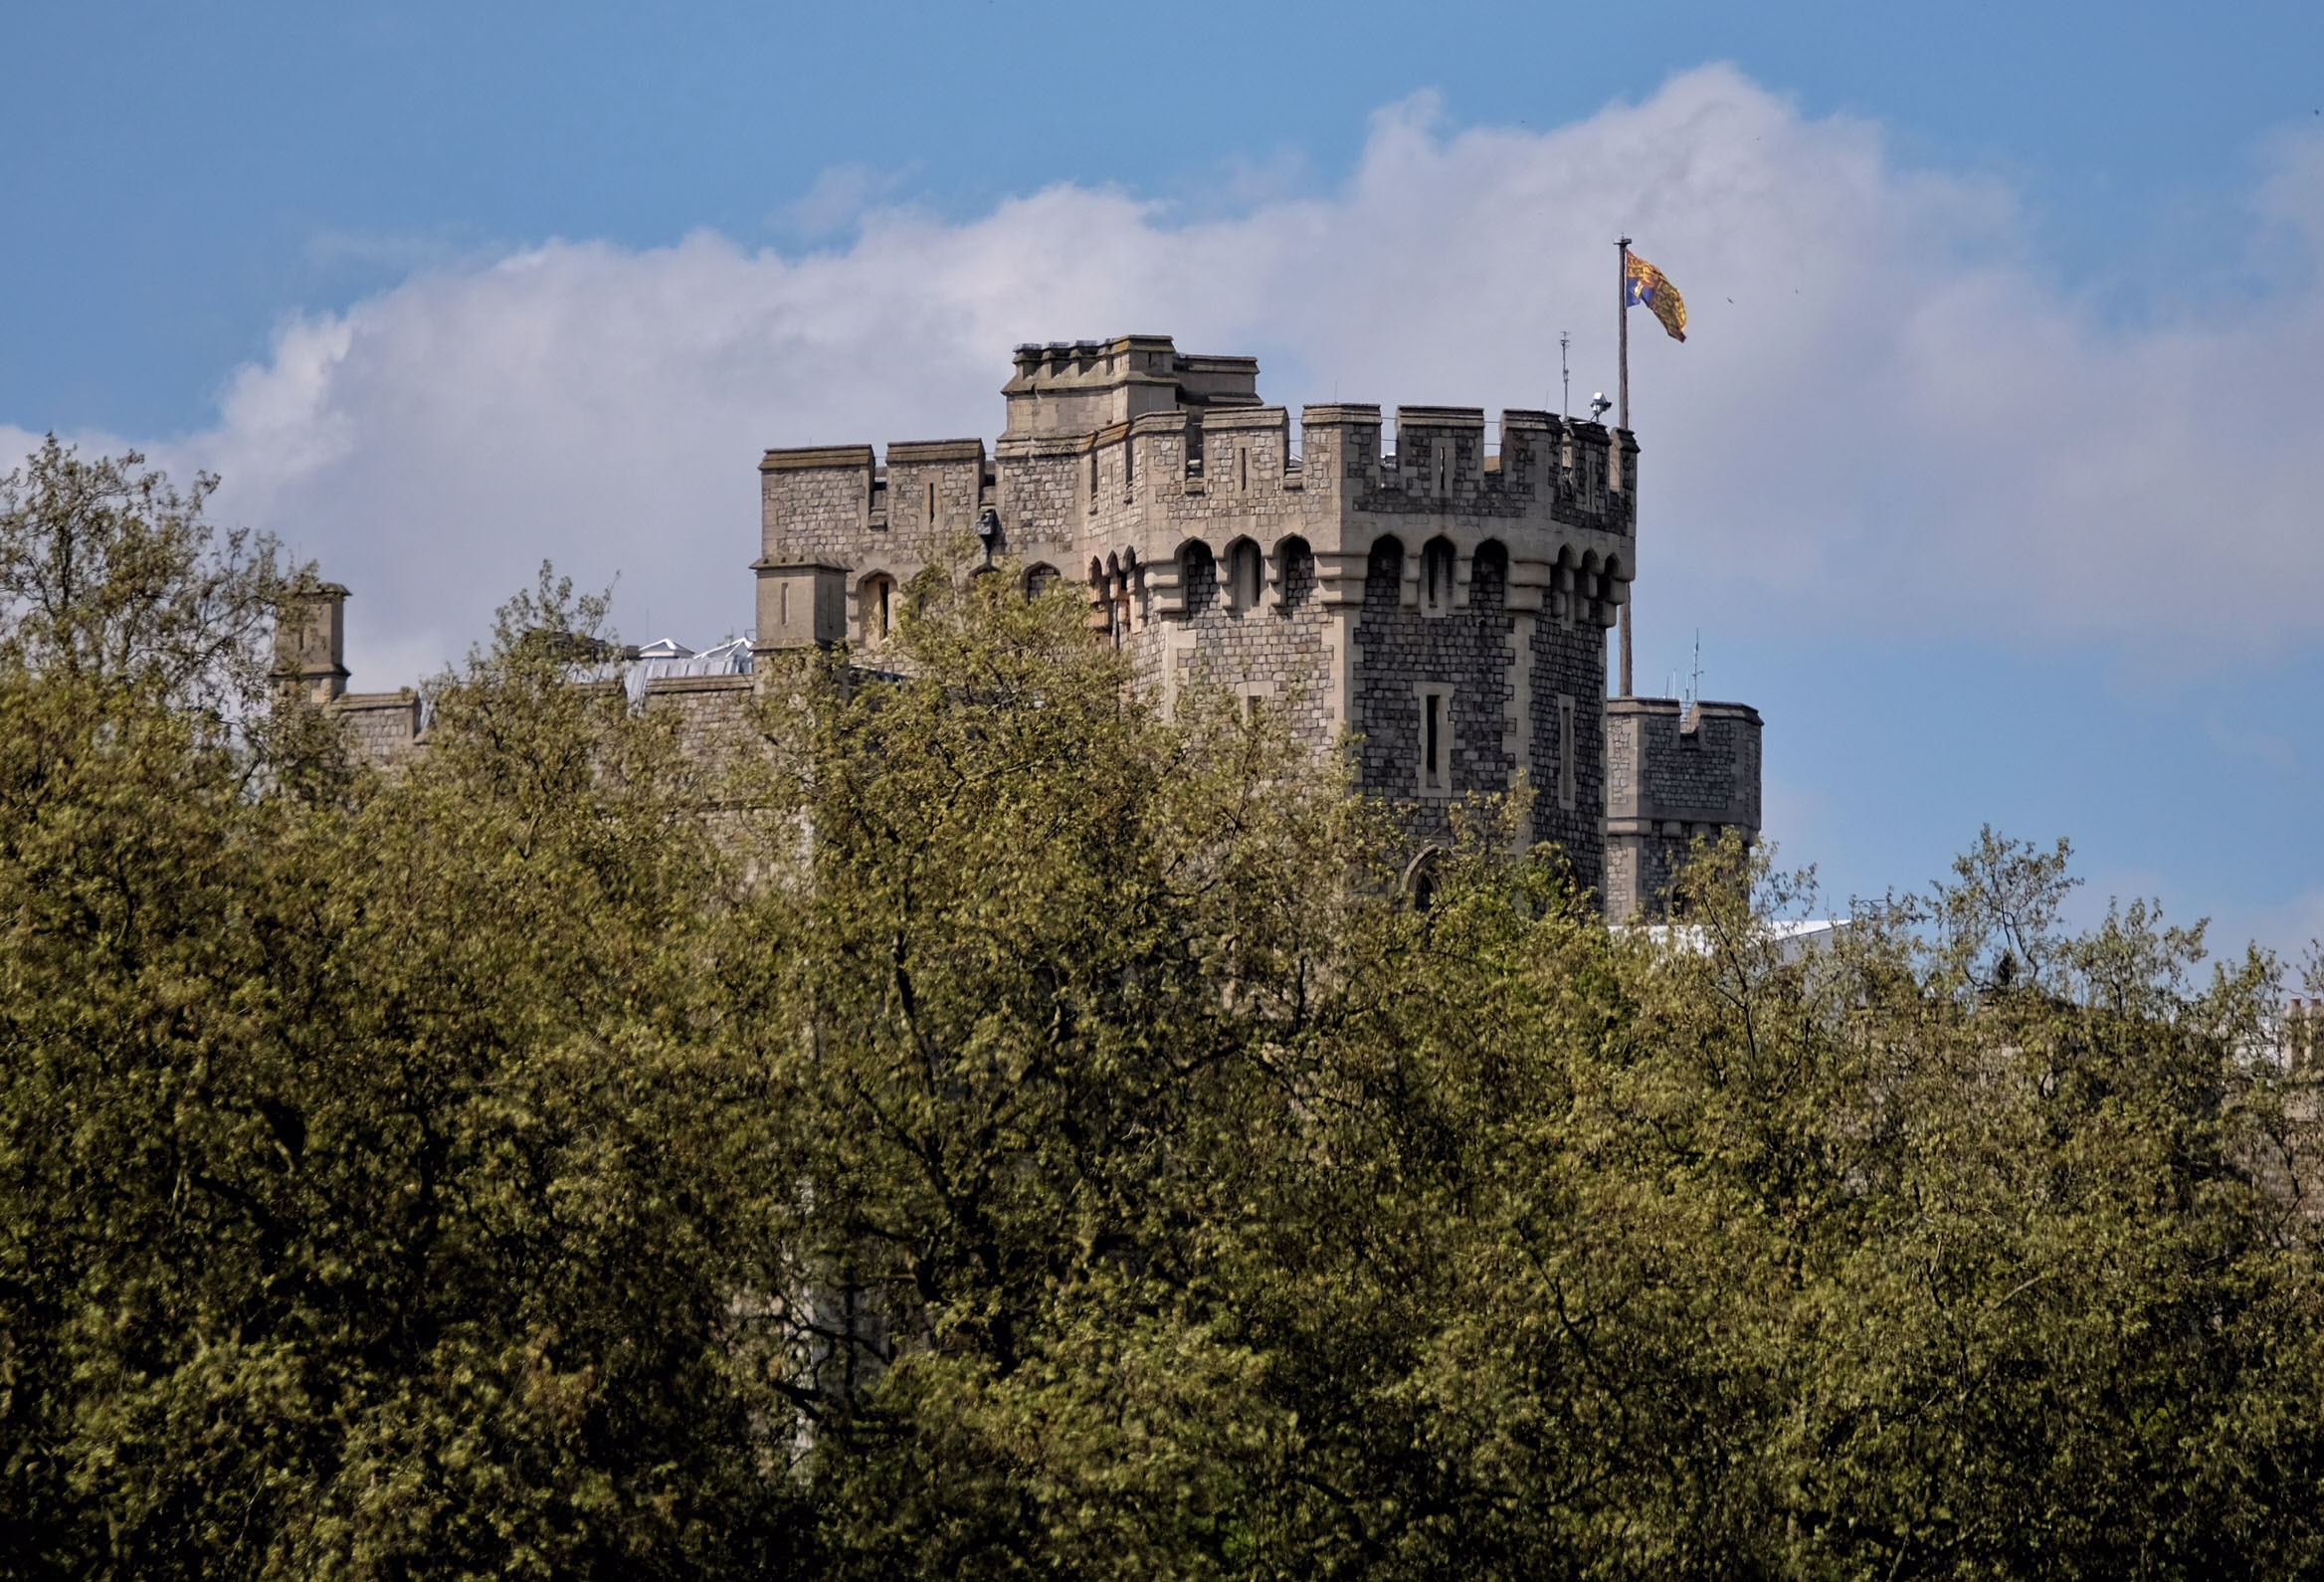 Beautiful castle - but is traffic ruining Windsor?